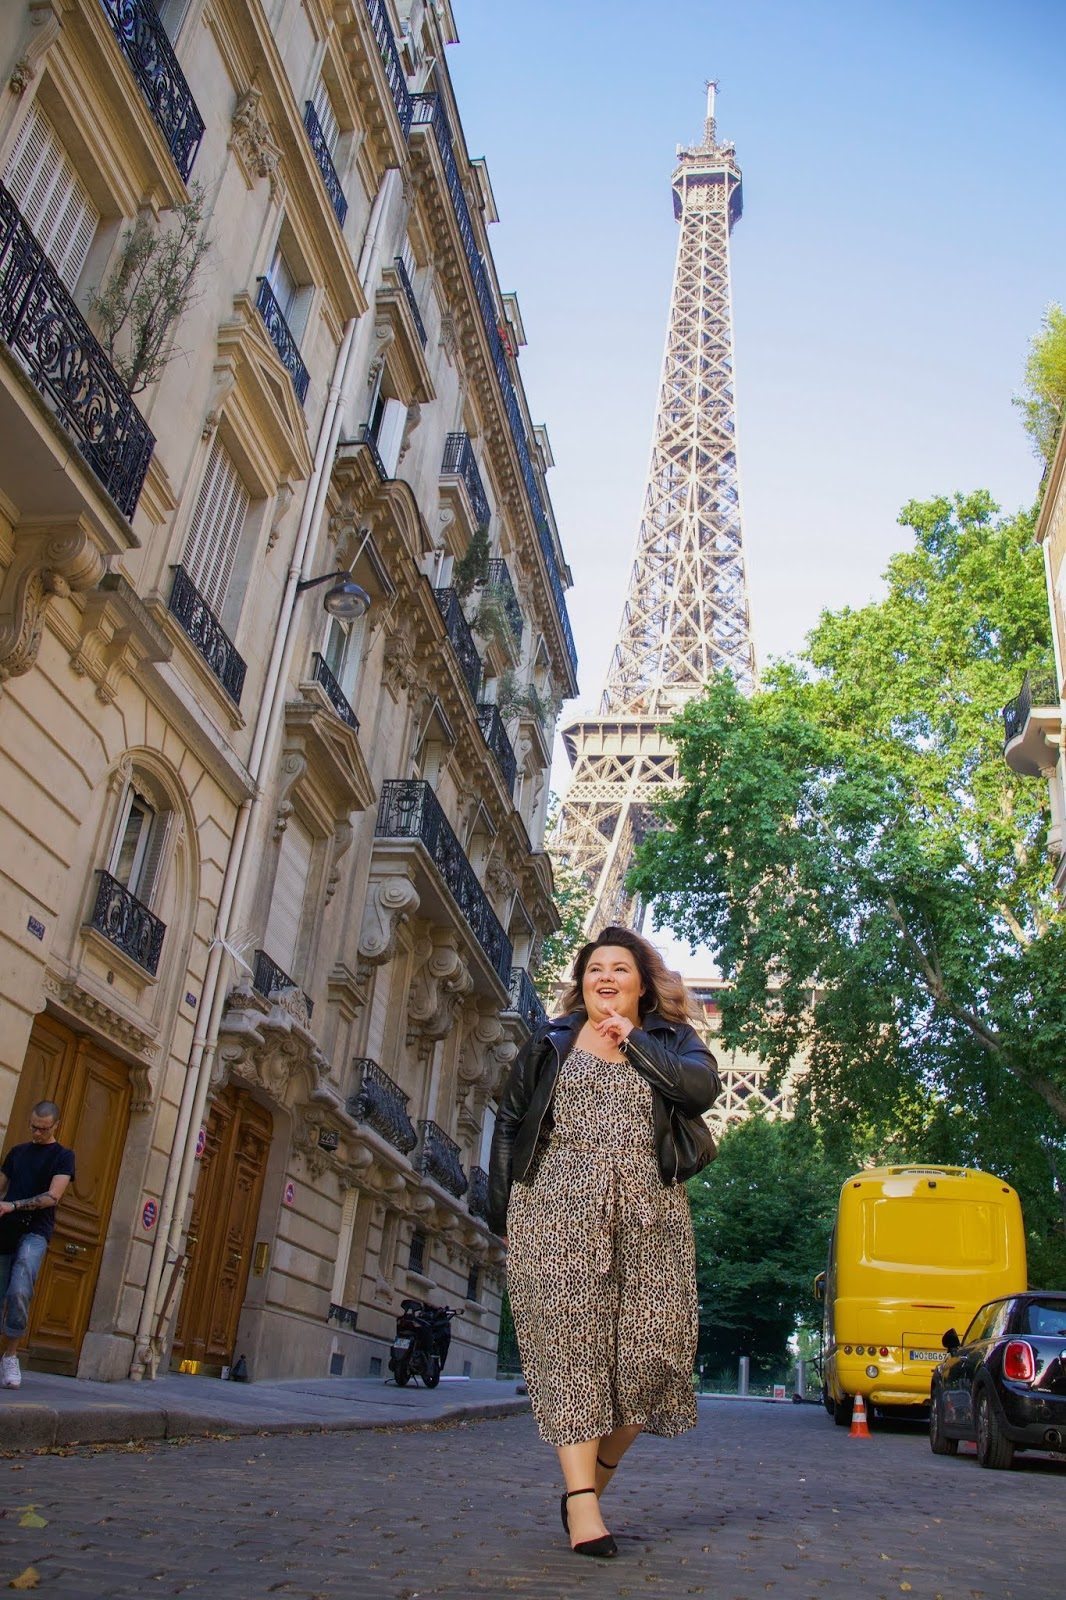 Chicago Plus Size Petite Fashion Blogger, influencer, YouTuber, and model Natalie Craig, of Natalie in the City, wears Chic Soul's Make A Scene Leopard Jumpsuit in Paris while visiting Rue de l'Université street in front of the Eiffel Tower.